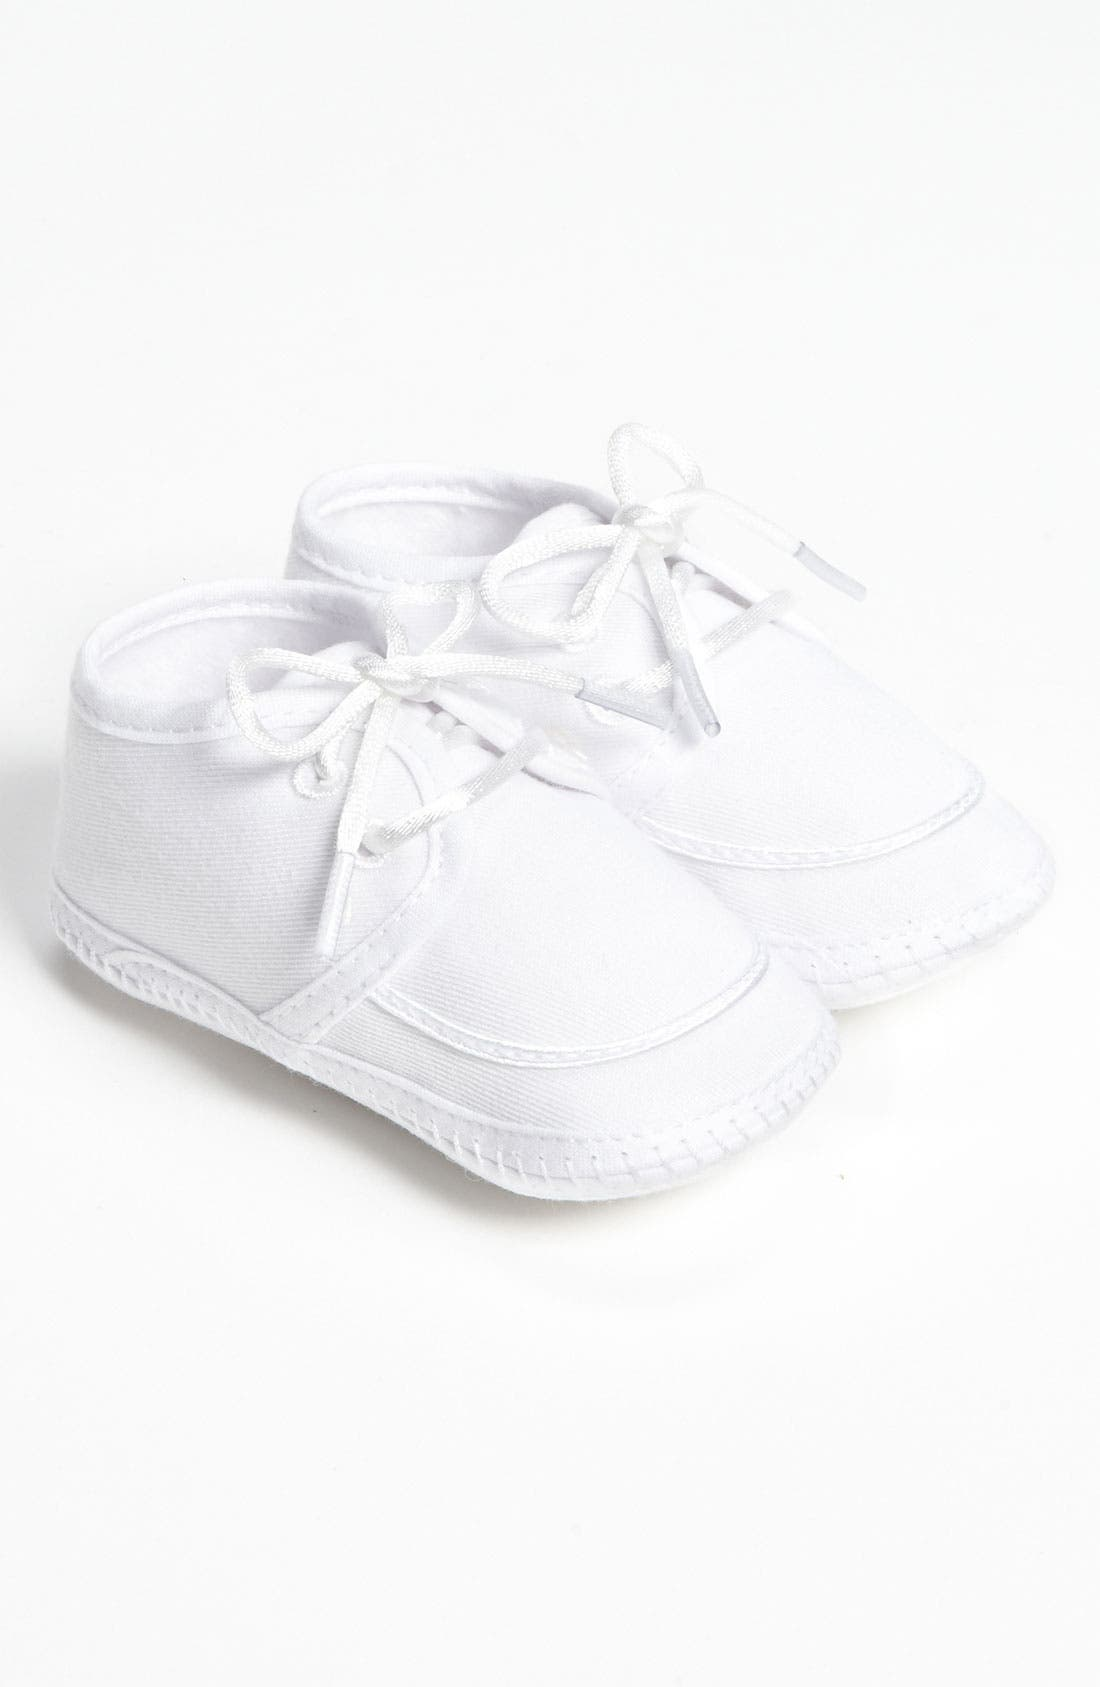 Main Image - Little Things Mean a Lot Gabardine Shoe (Baby)